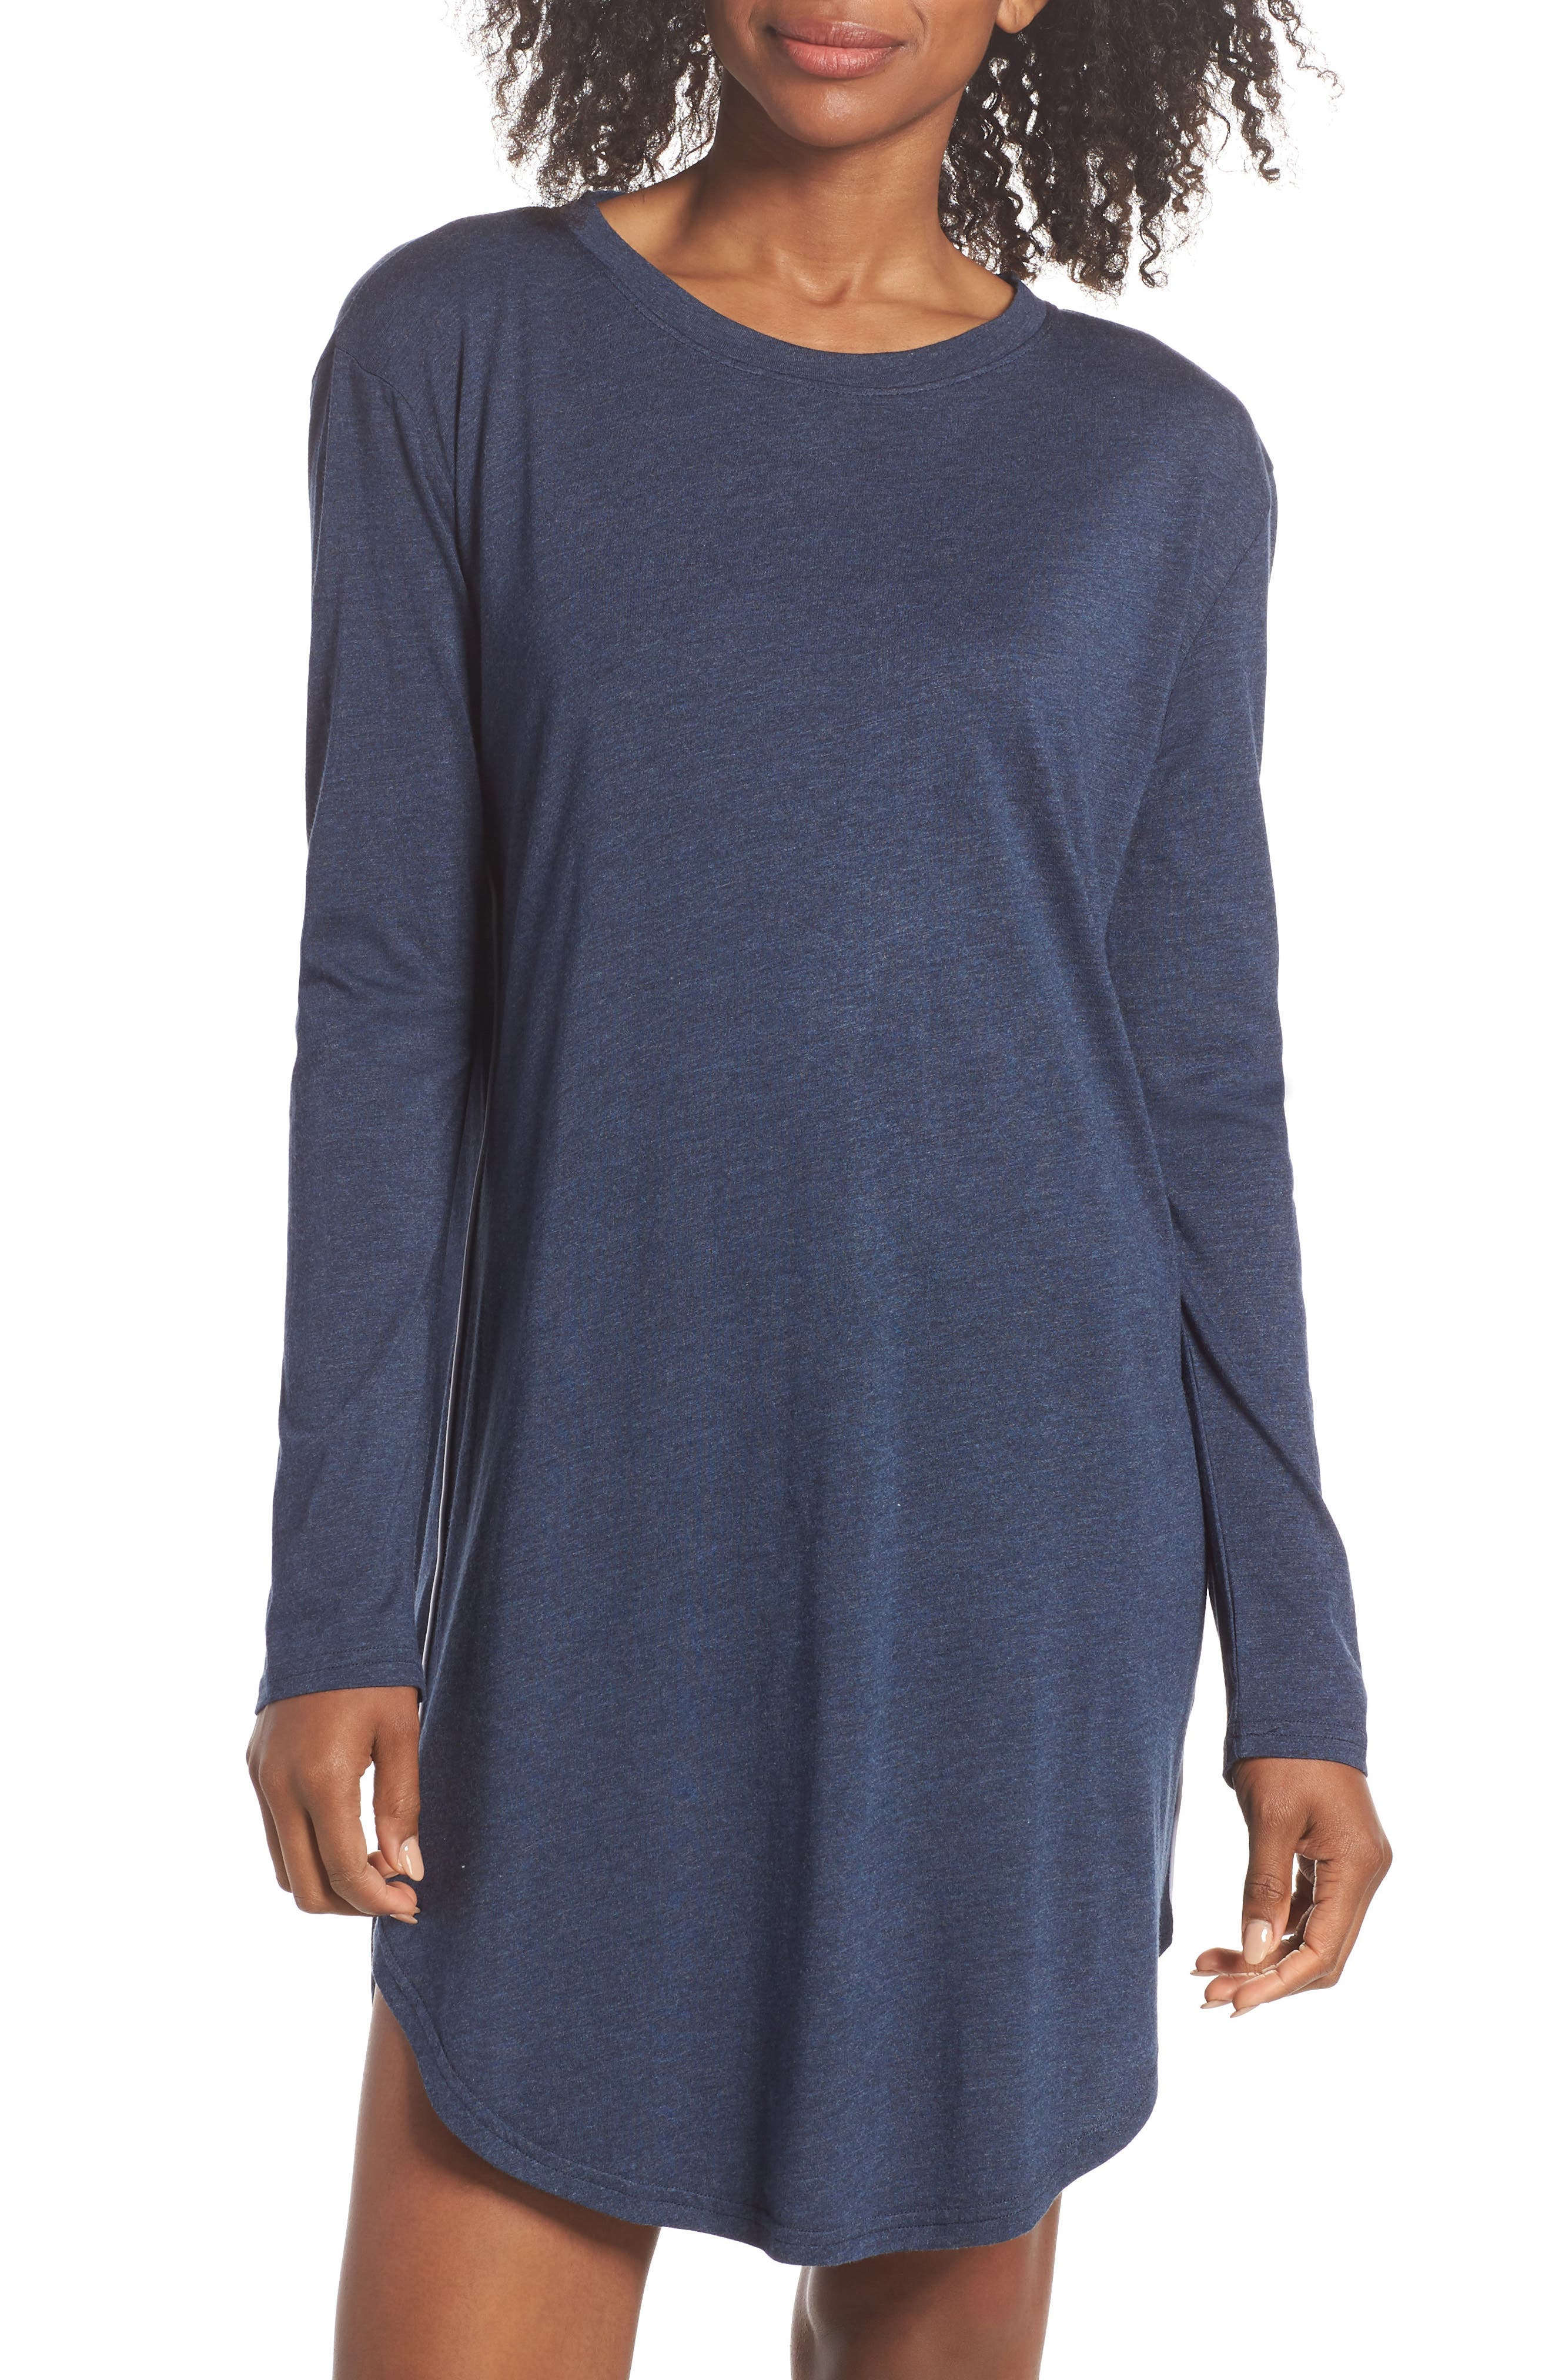 Midnight Marl Nightgown,                             Main thumbnail 1, color,                             Midnight Marle